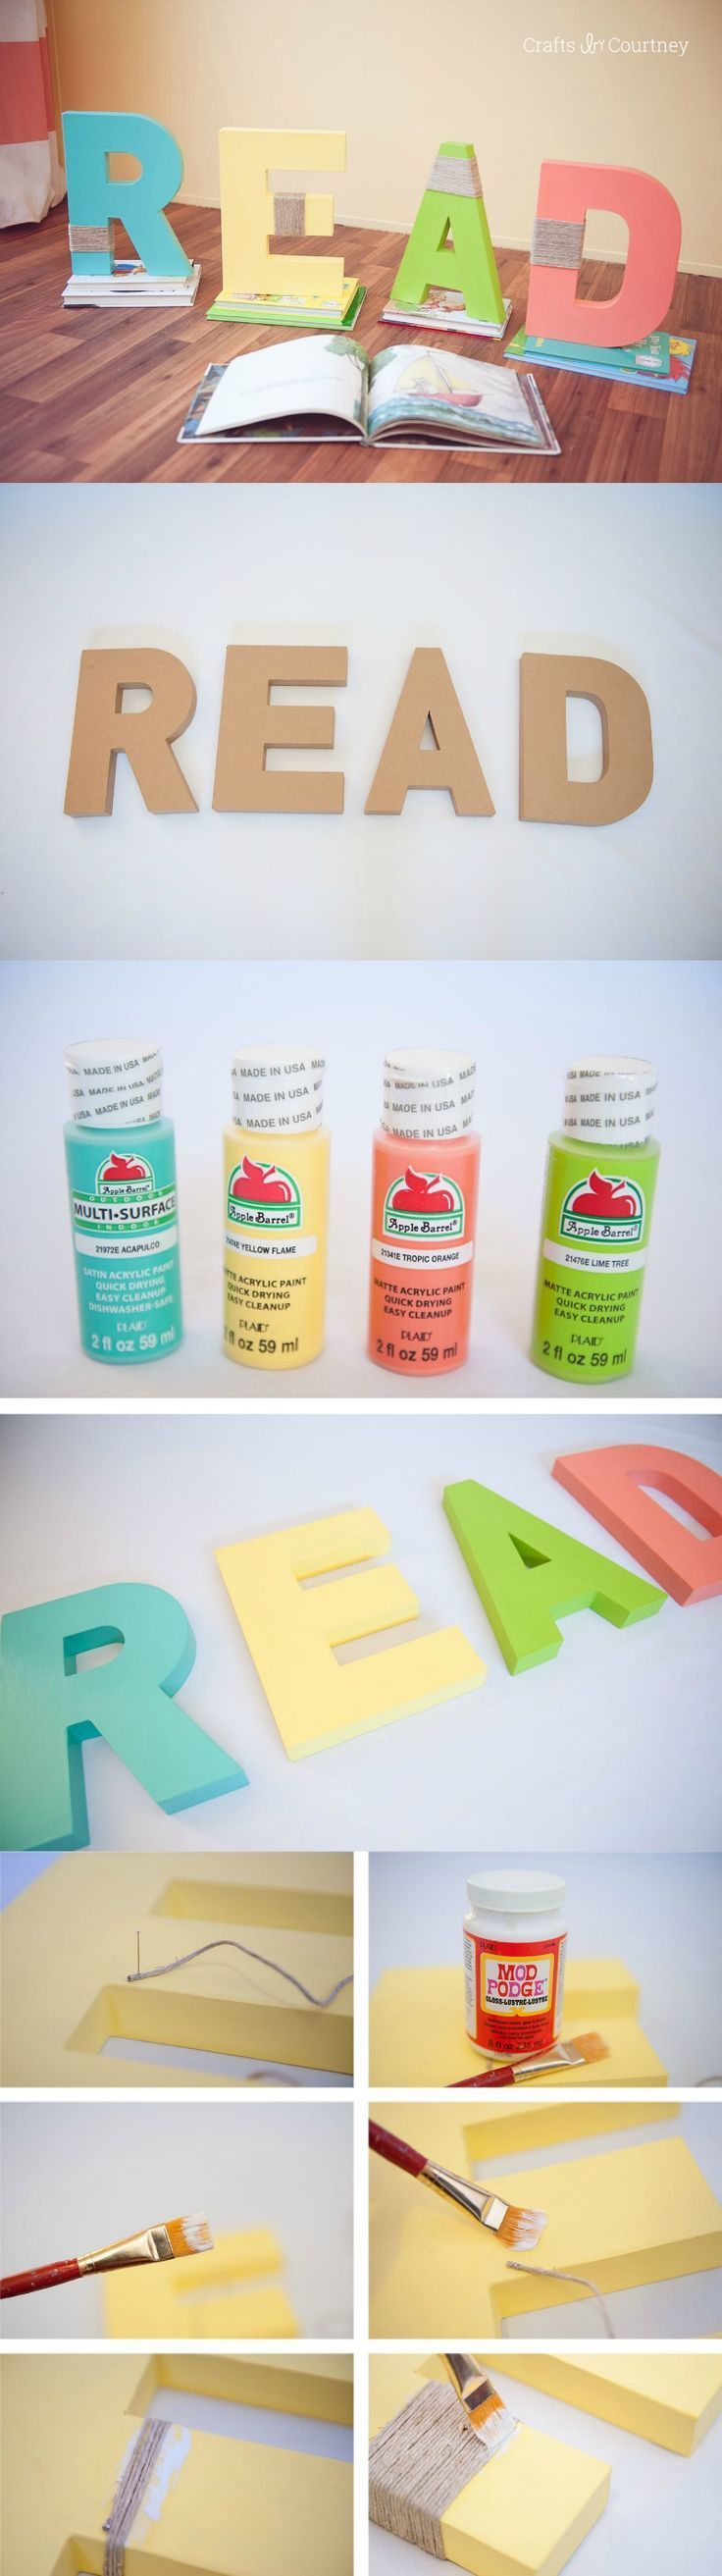 Make these colorful and unique READ letters for a kids' bedroom, book nook, library, or anywhere else that people will hang out and read!